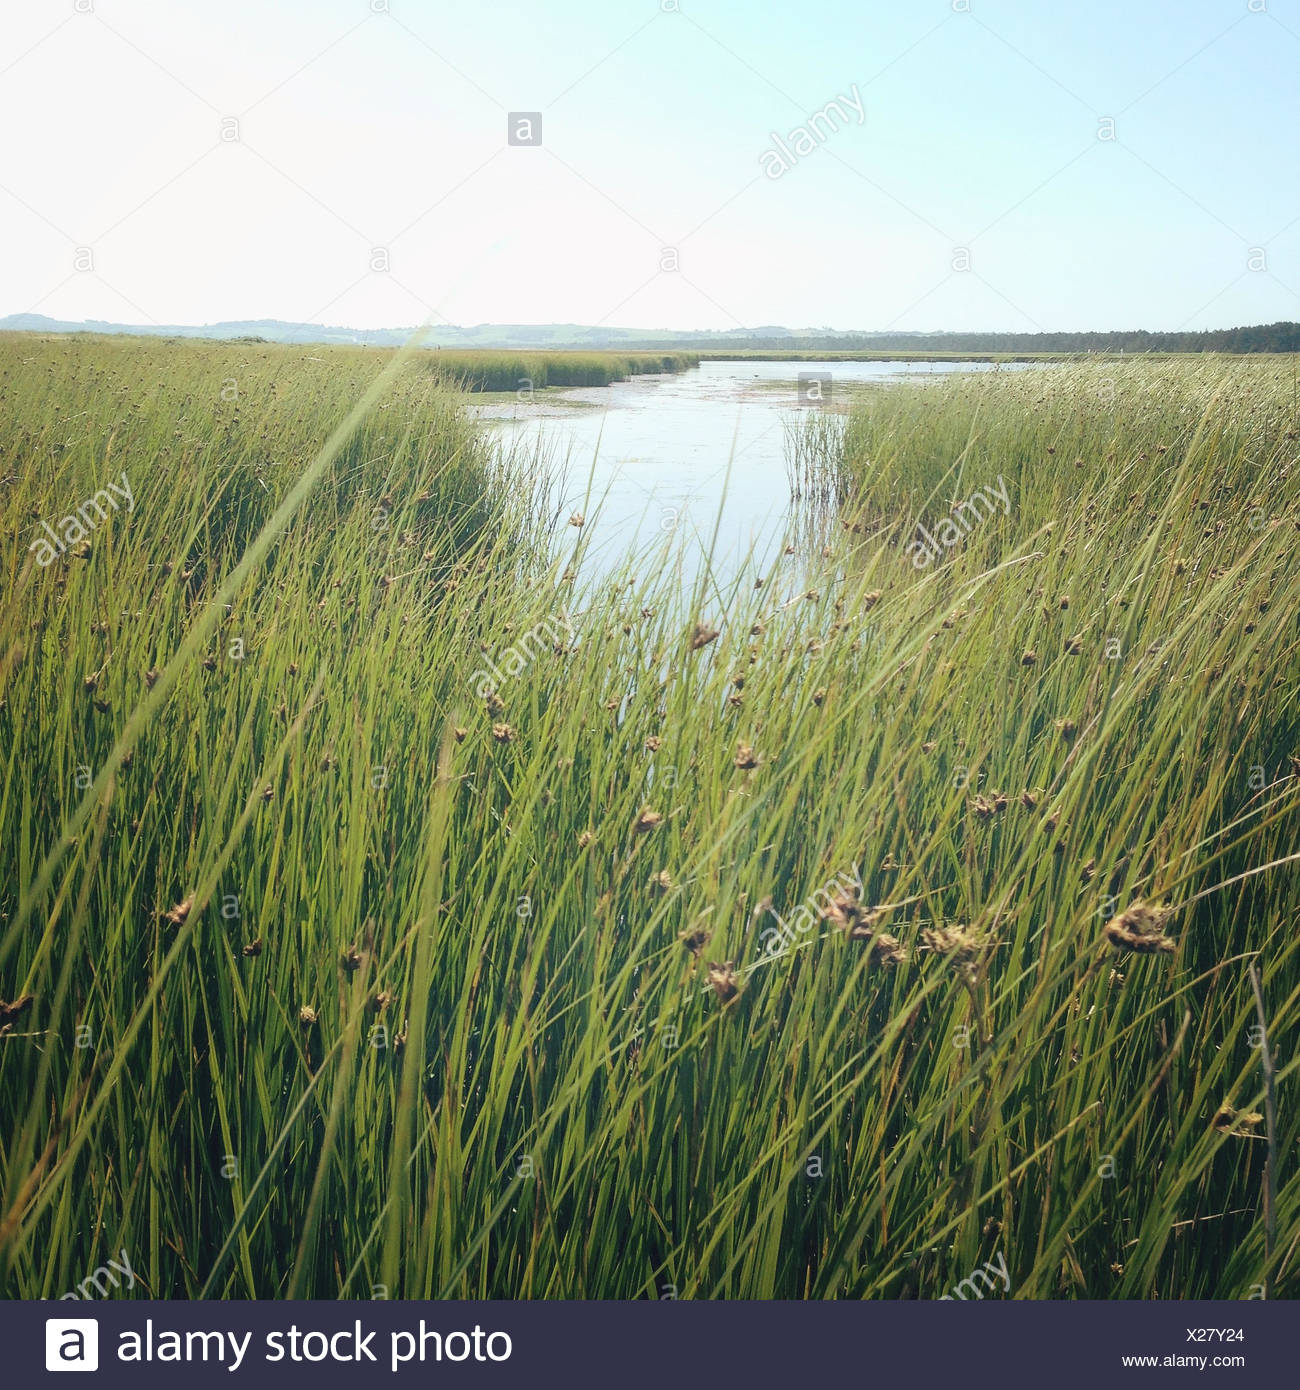 Long grass by river - Stock Image